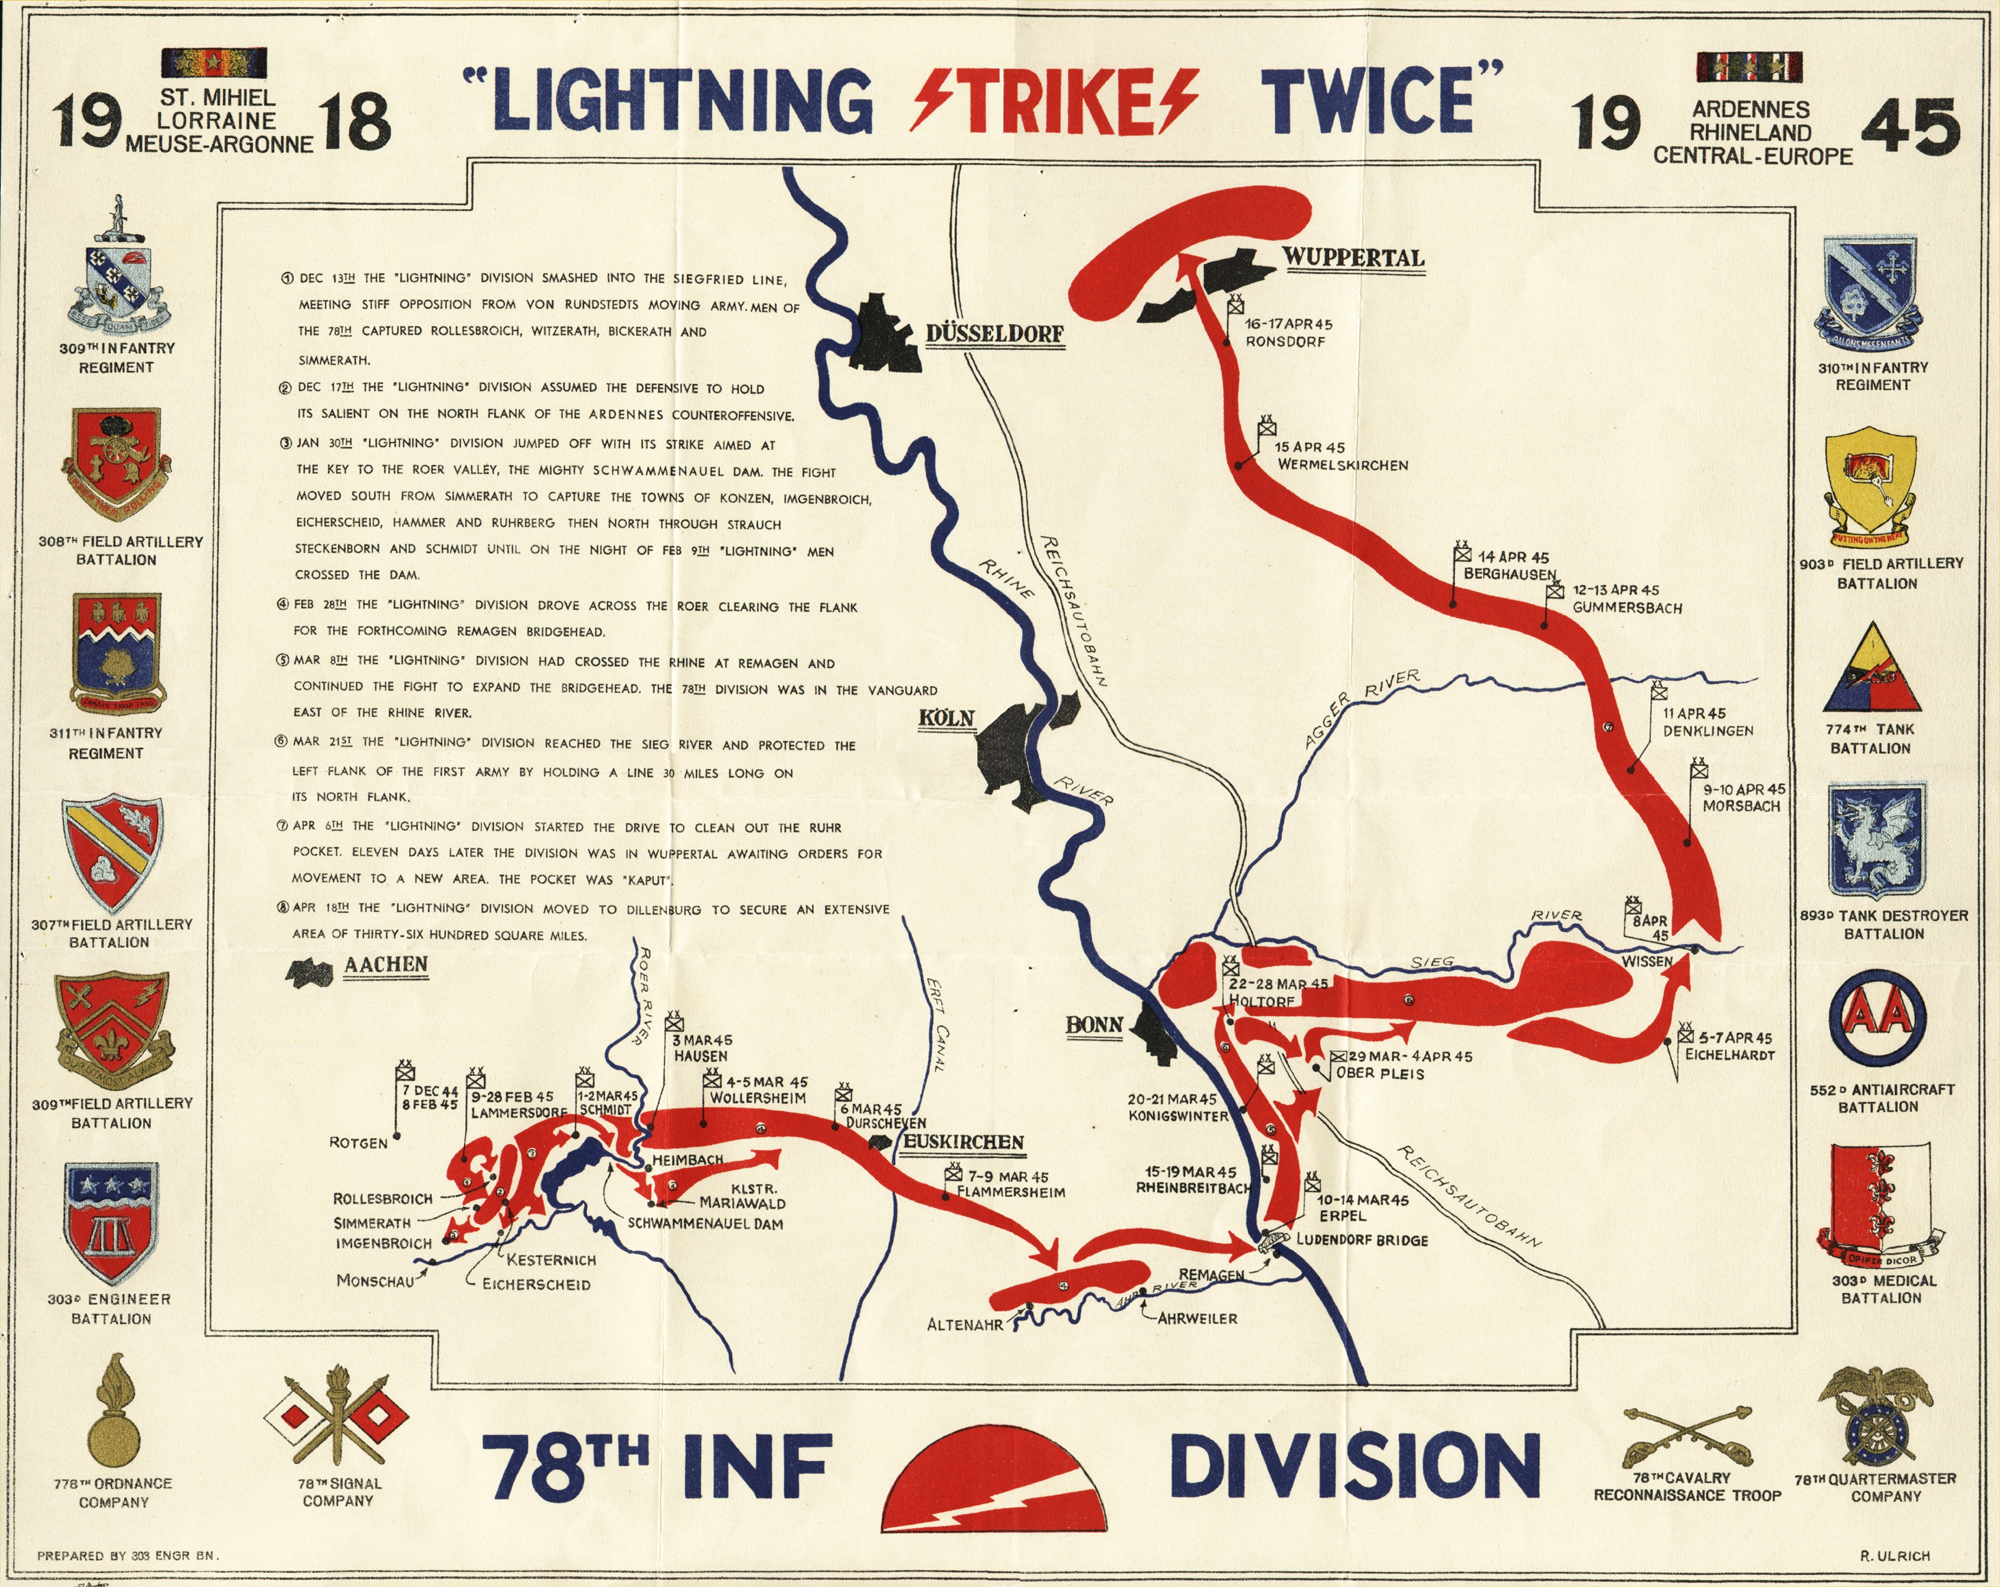 the map of united states with File 78th Division Wwii Route Map on File 78th division wwii route map besides Oregon dunes national recreation area further Richmond International Airport in addition National Park Sachsische Schweiz 7 together with Stock Images Bunting Flags Image22528314.